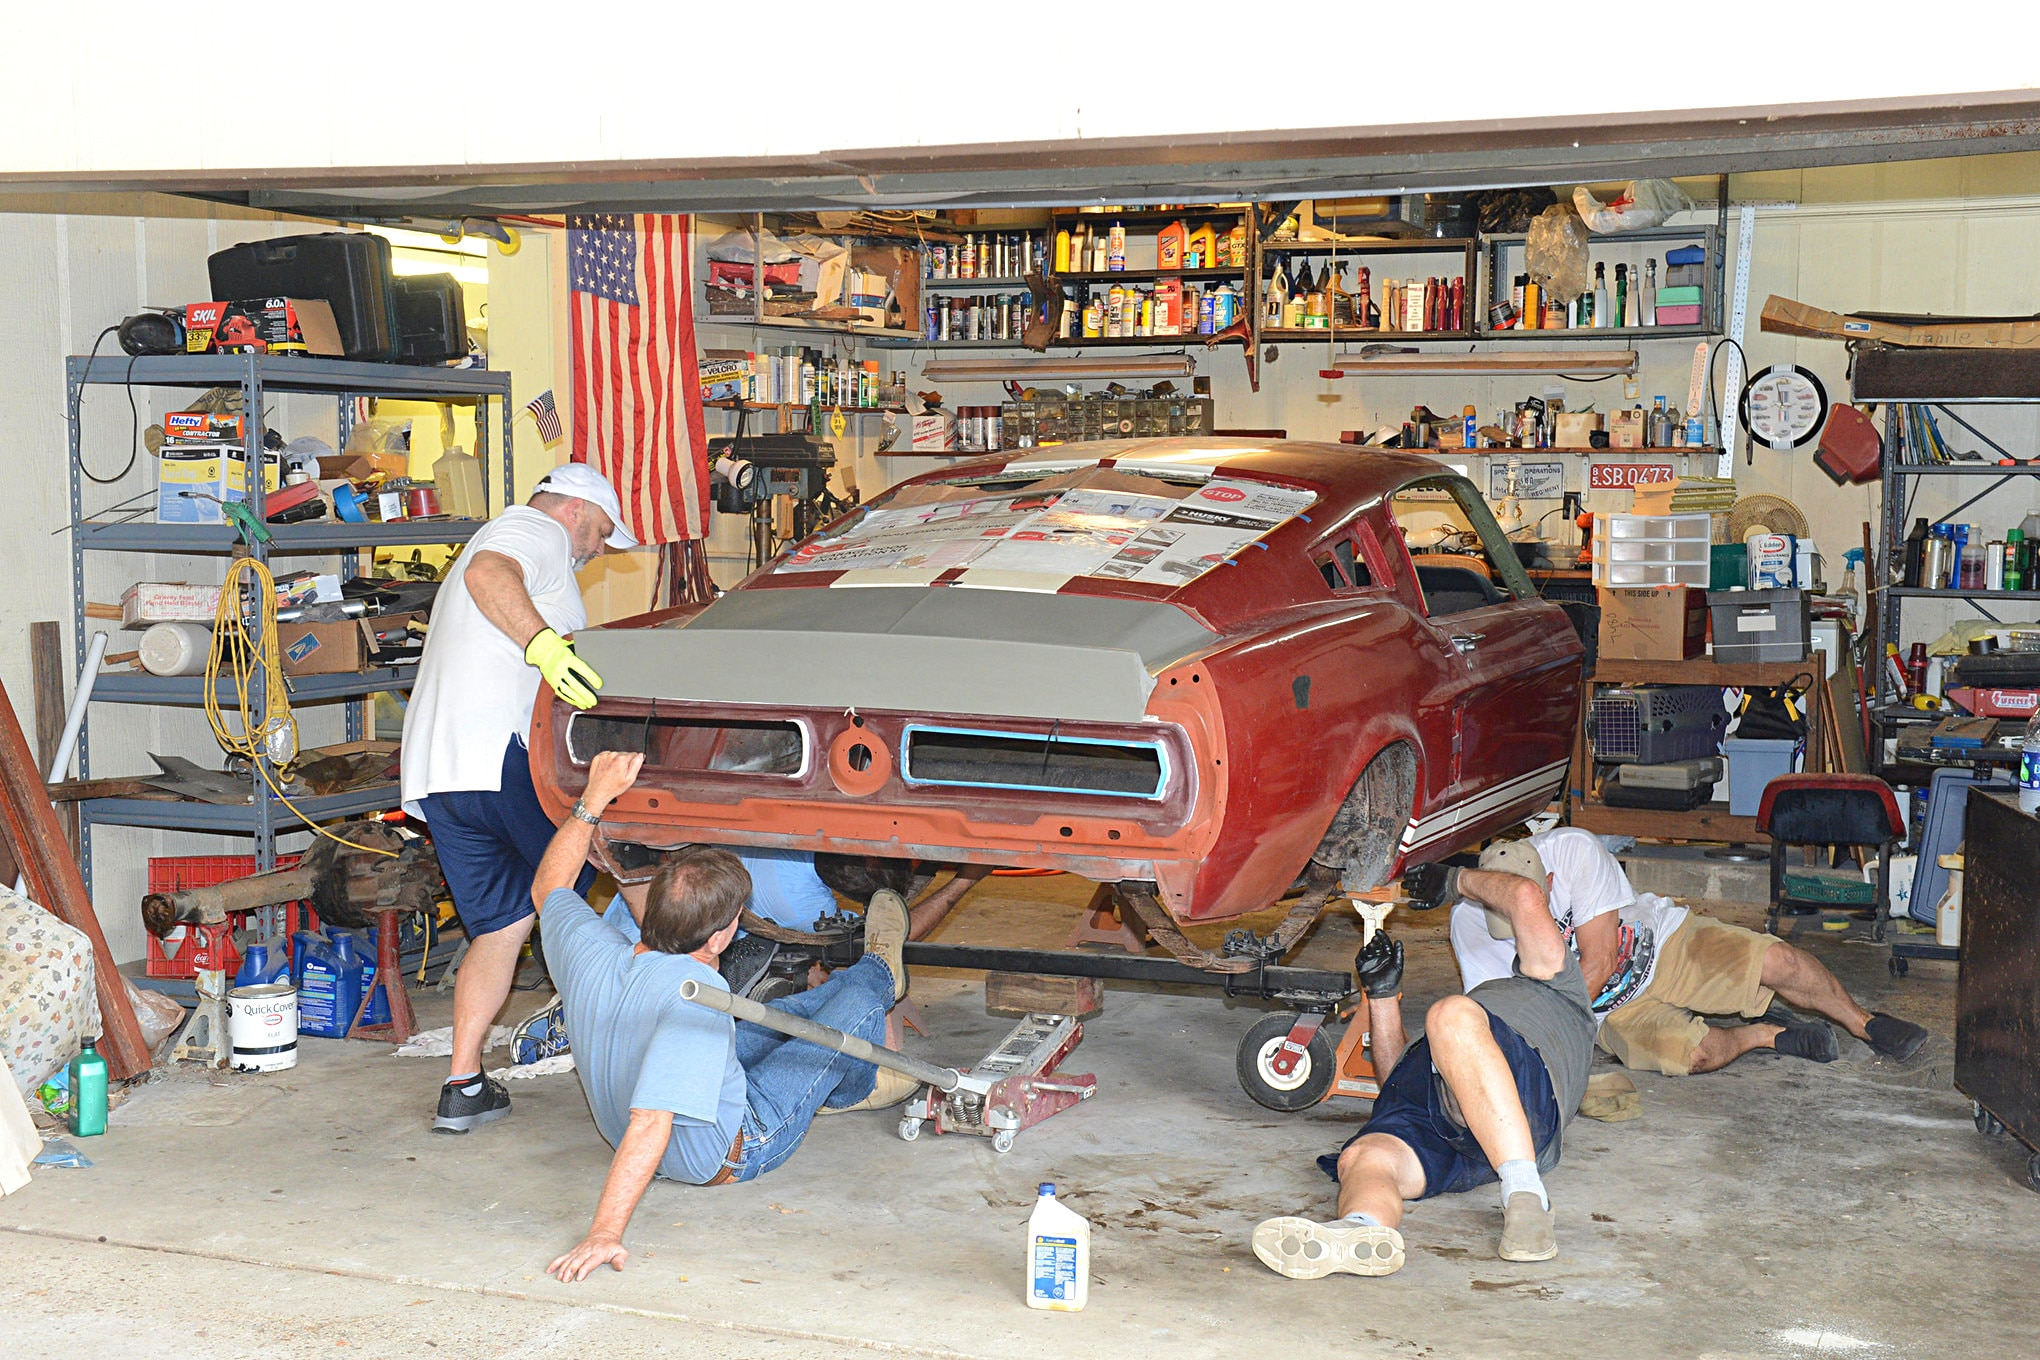 1967 Gt350 Mustang Rare Find 041